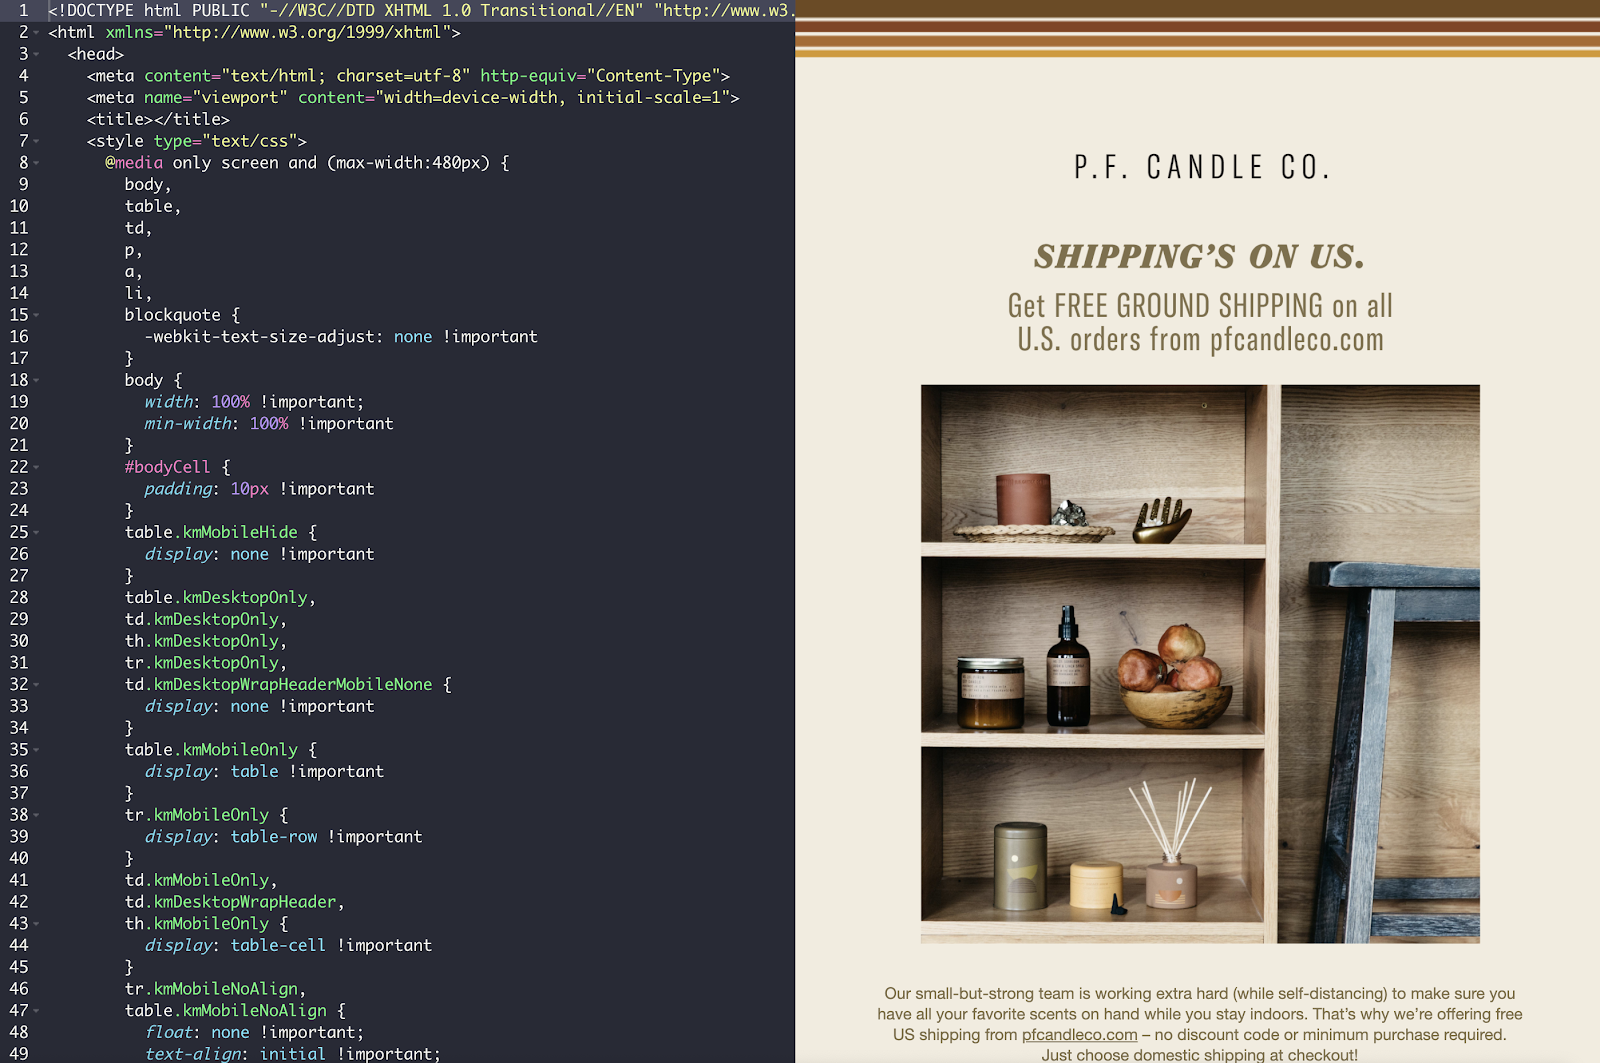 HTML email build from P.F. Candle Co.